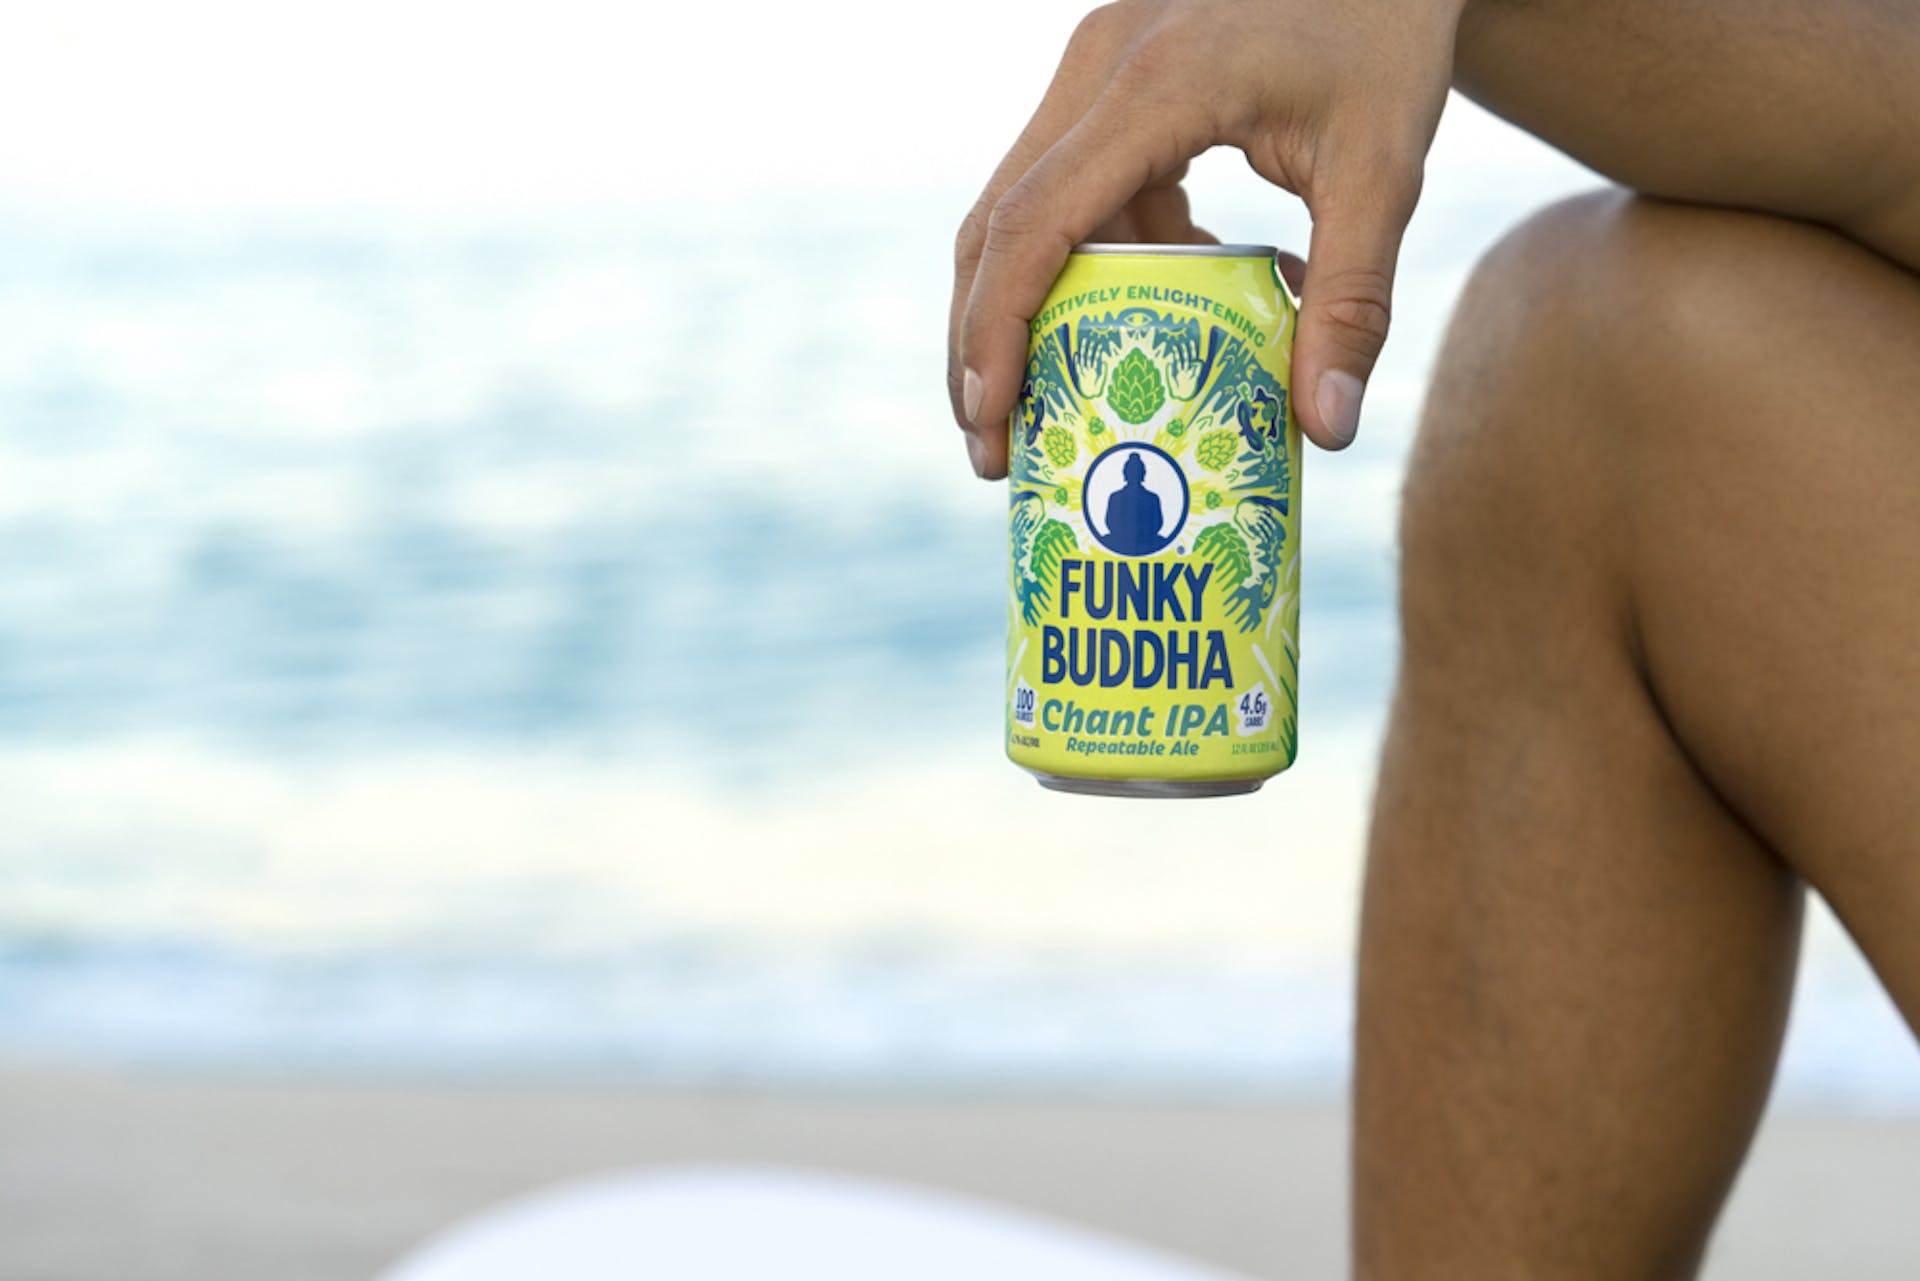 Drinking Funky Buddha beers on the beach